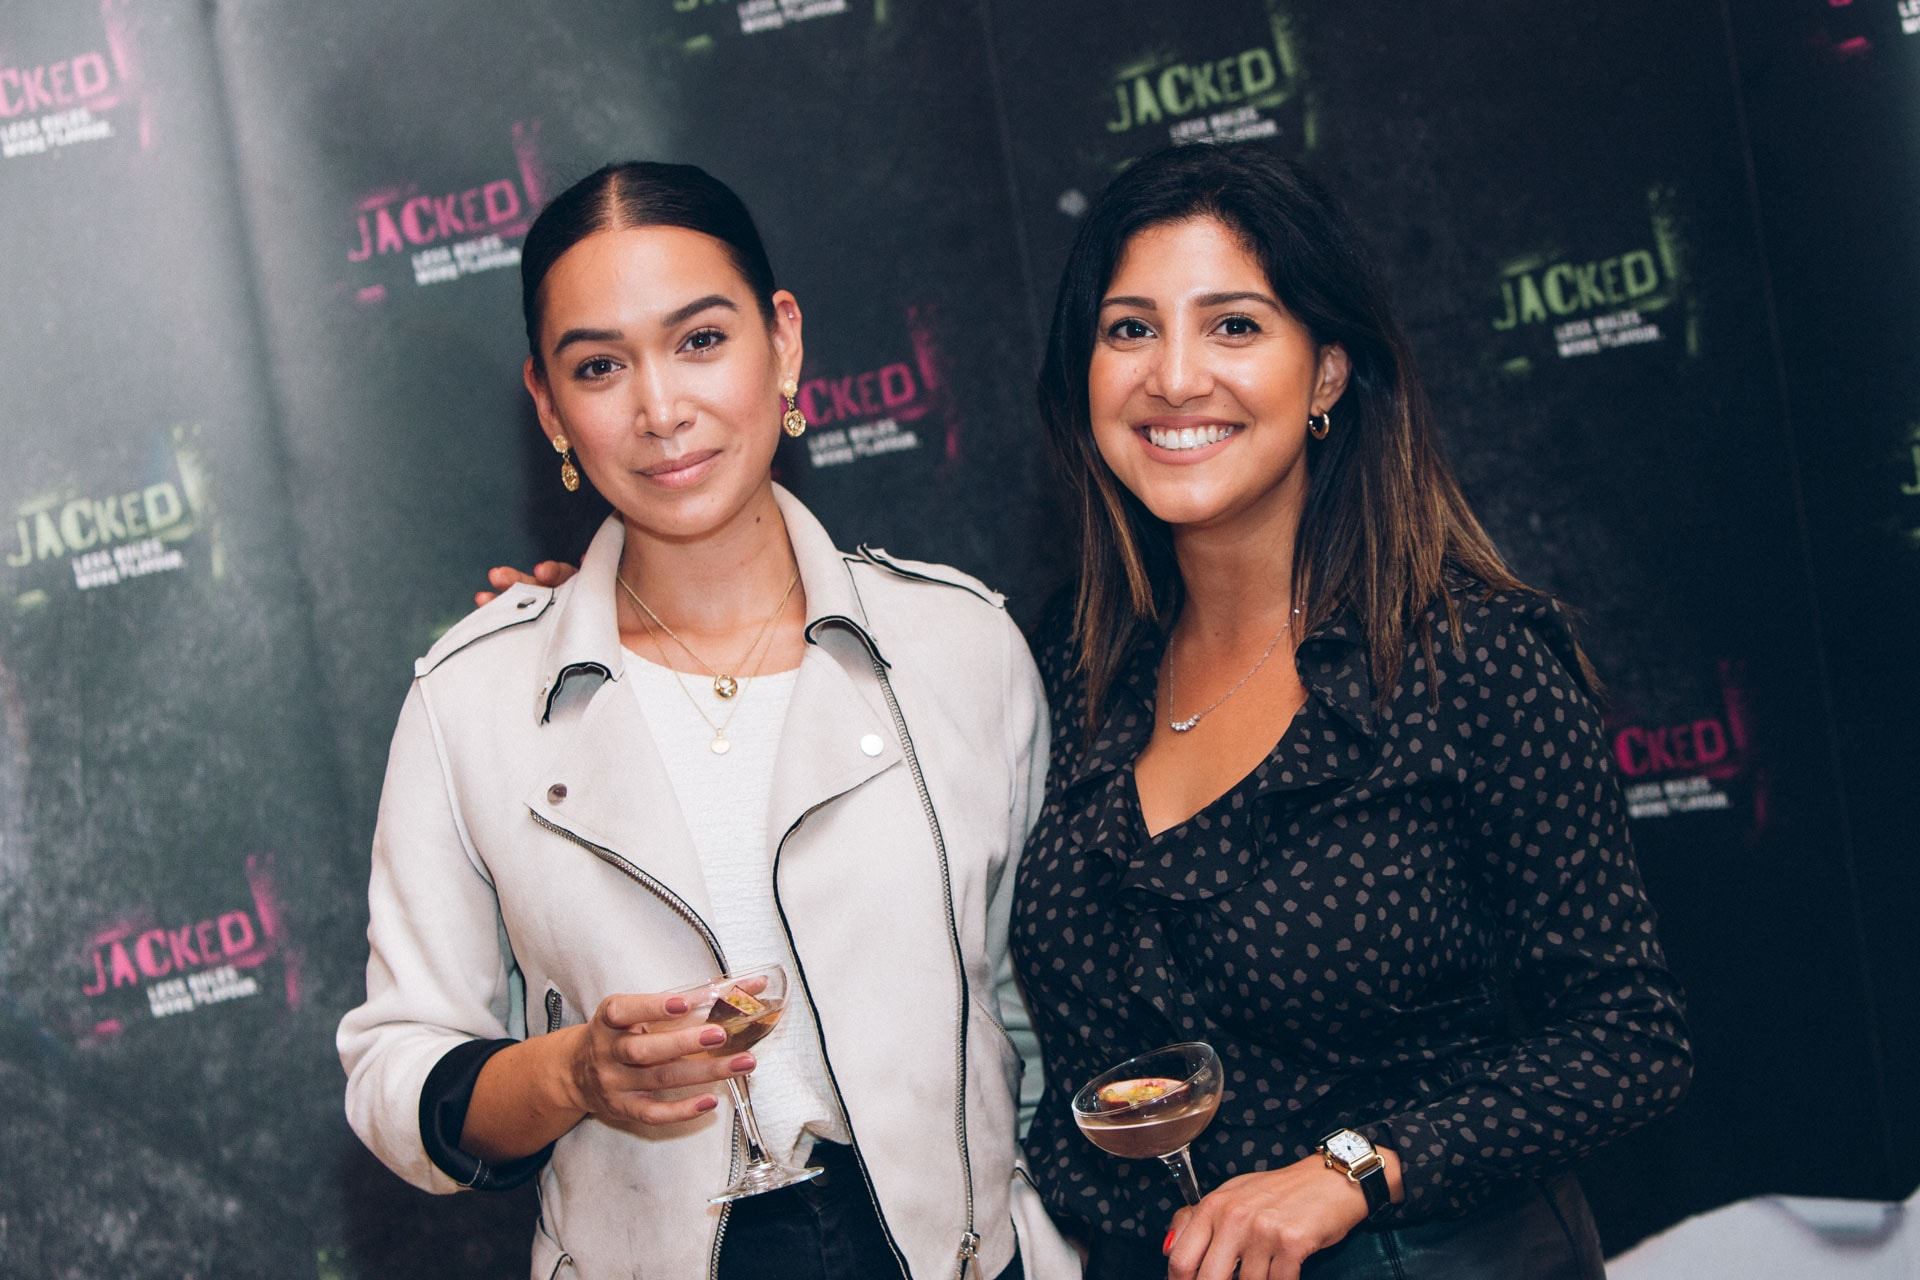 Jacked Wine London launch